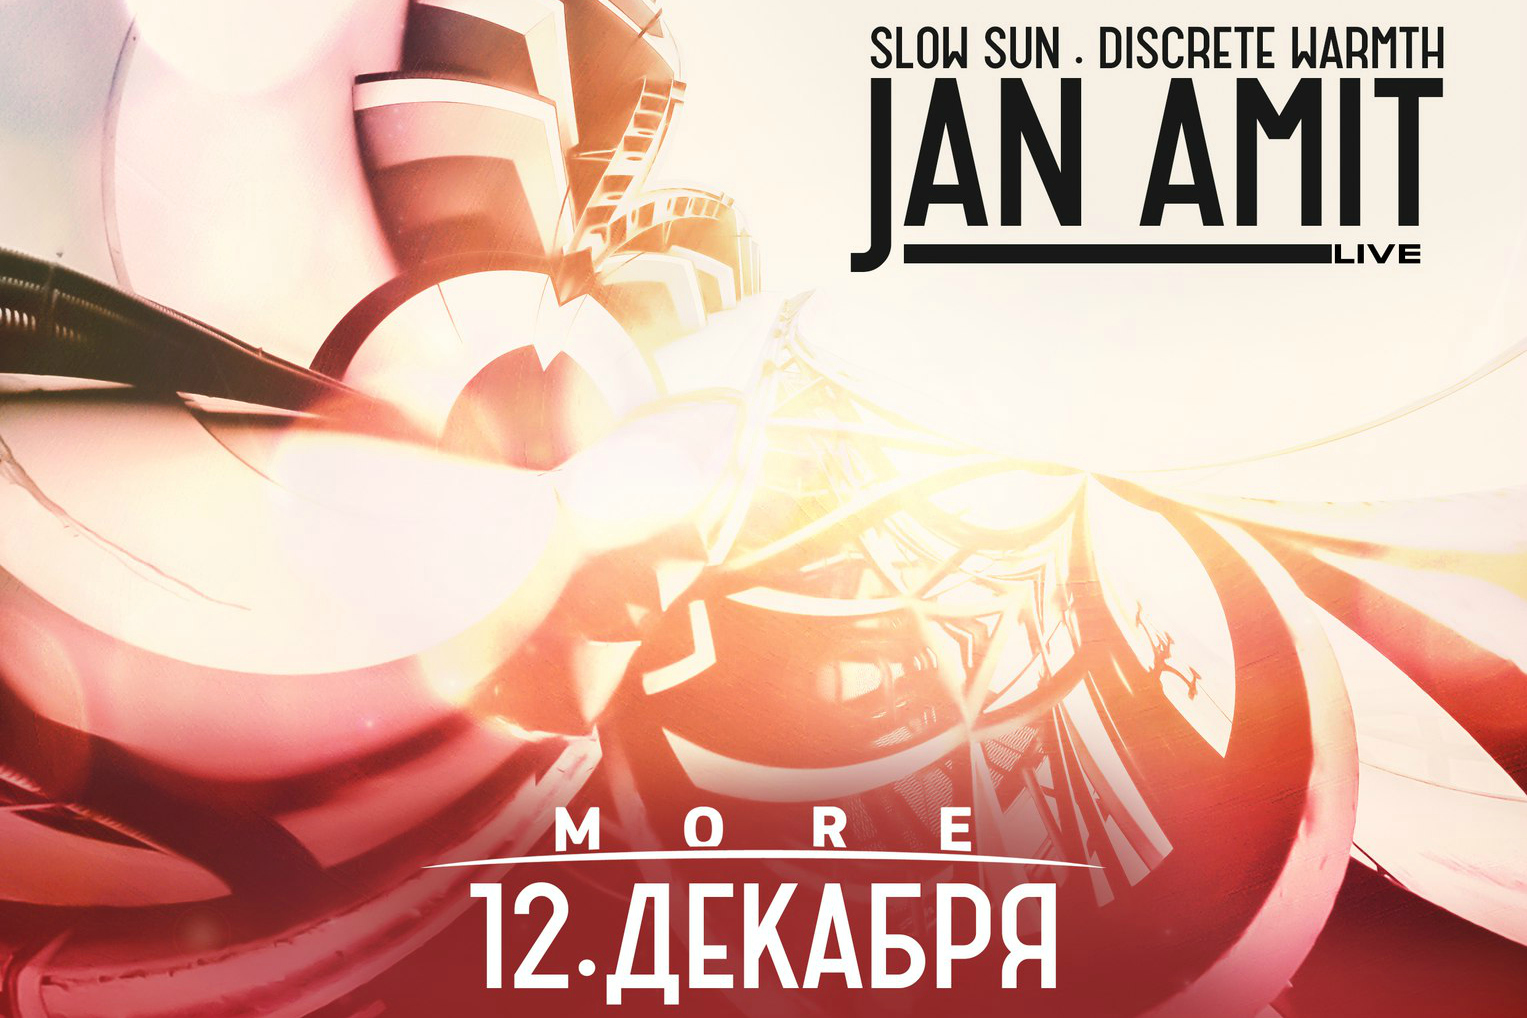 Анонс Jan Amit, Discrete Warmth, Slow Sun в Питере Море 12.12.15